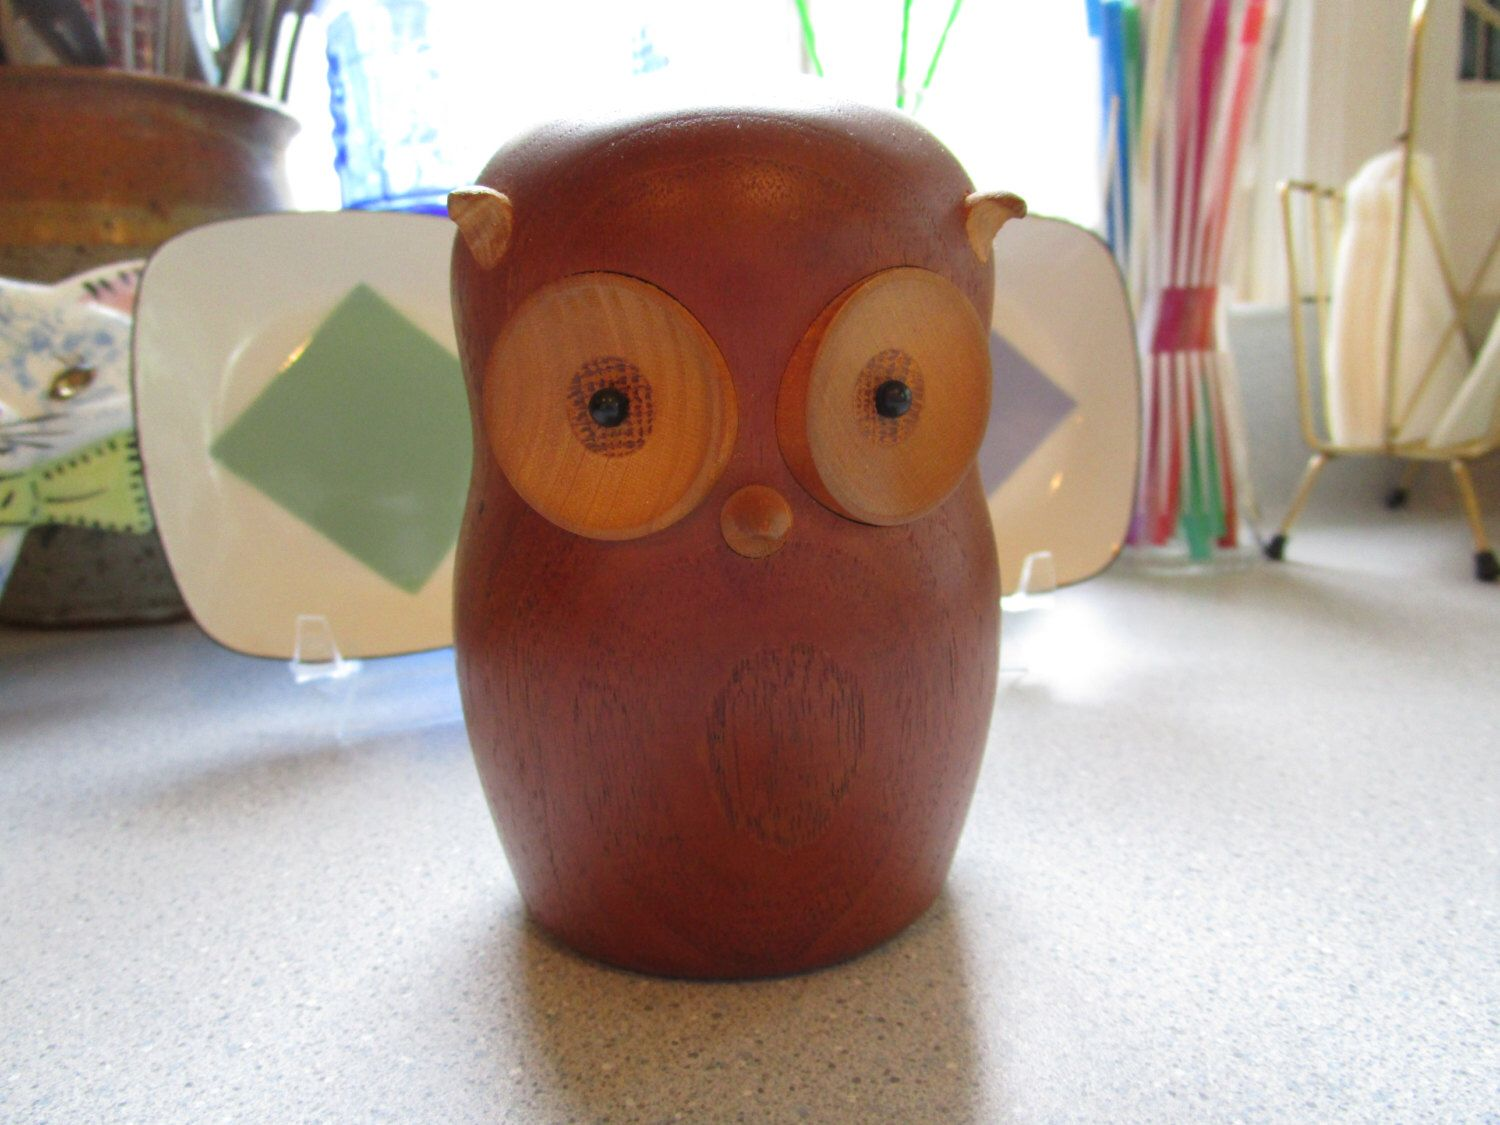 Mid Century Danish Laurids Lonborg Owl - Excellent! by flyingdustbunny on Etsy https://www.etsy.com/listing/229651325/mid-century-danish-laurids-lonborg-owl